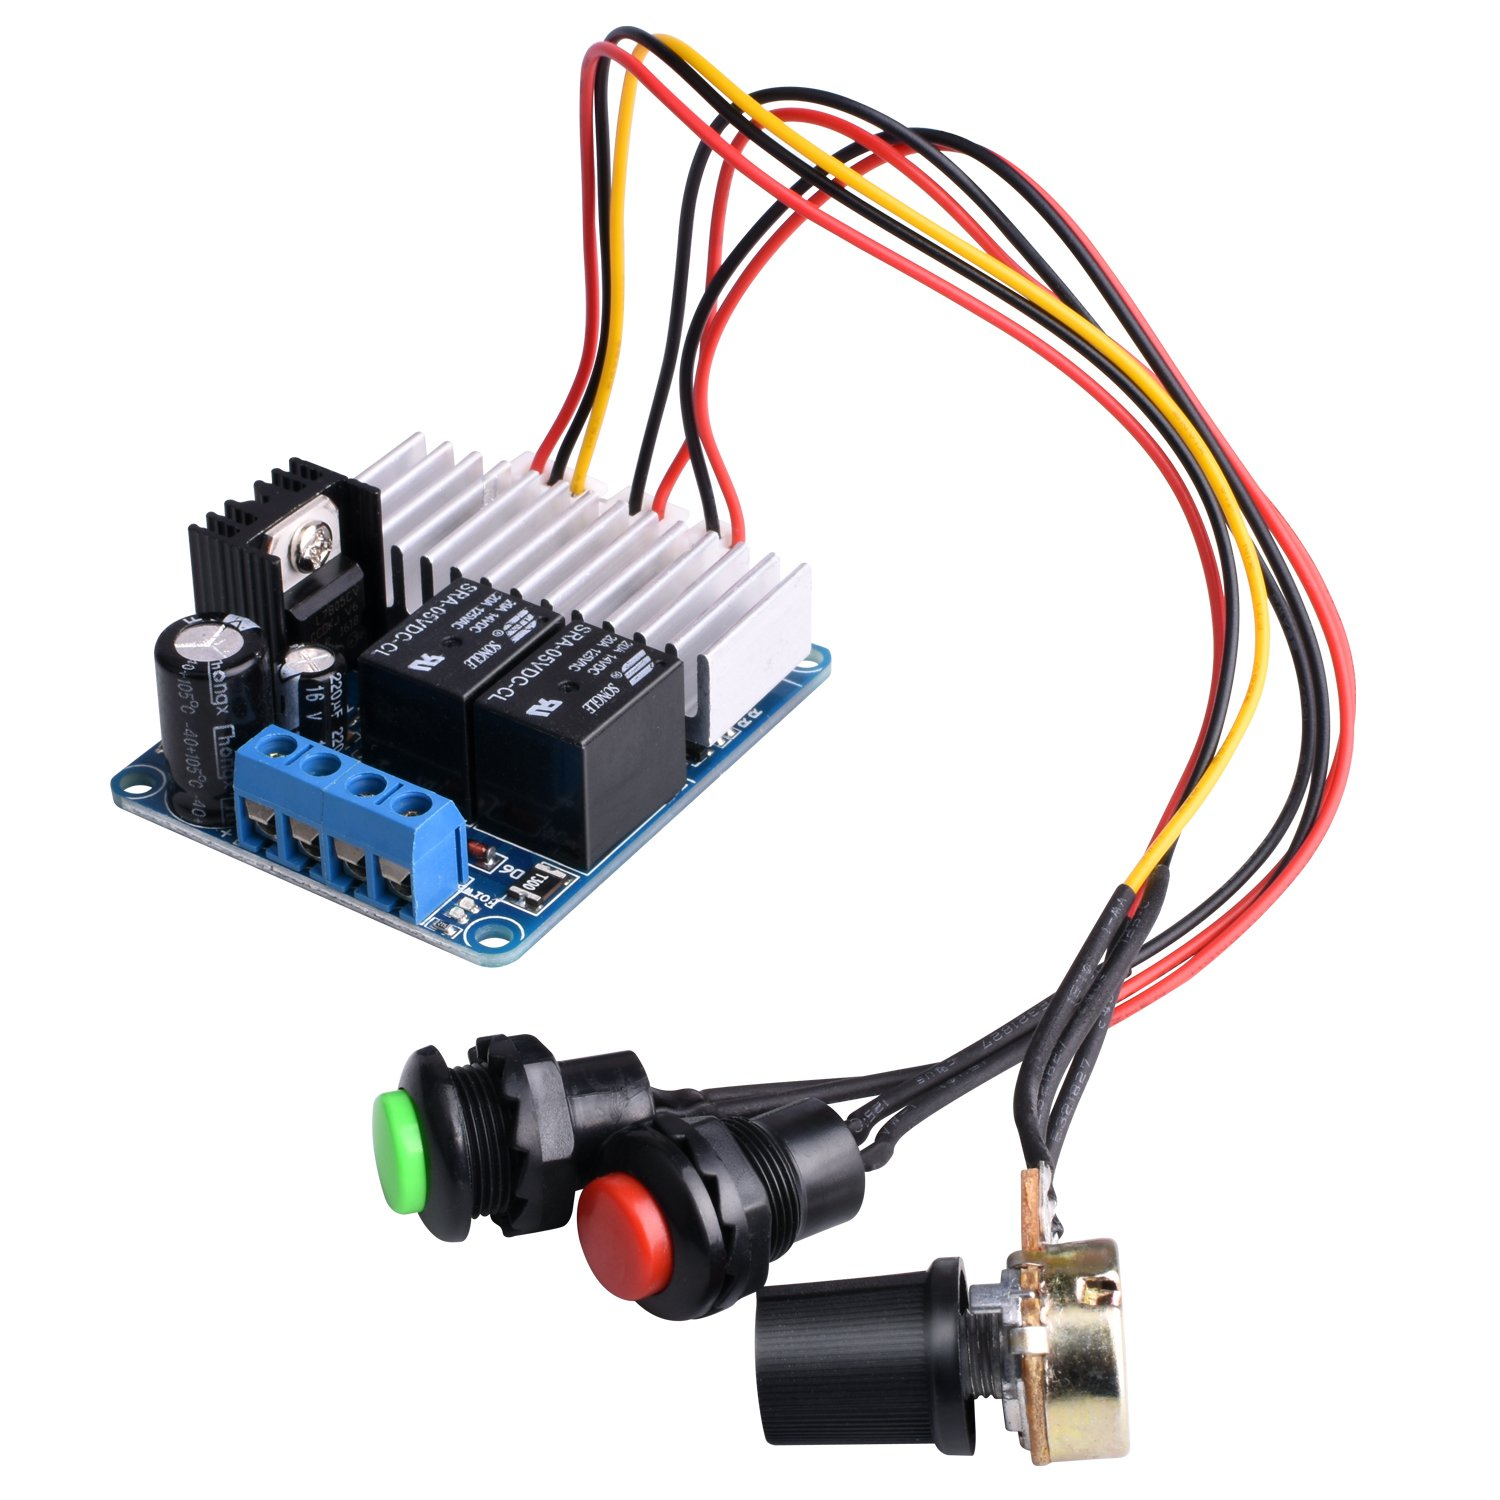 Dc Motor Speed Controllerquimat 7 30v 10a 300w Pwm Supply 5v Vcc And 12v To Input Led Driver Application Circuits Adjustable Reversible Switch Reversing